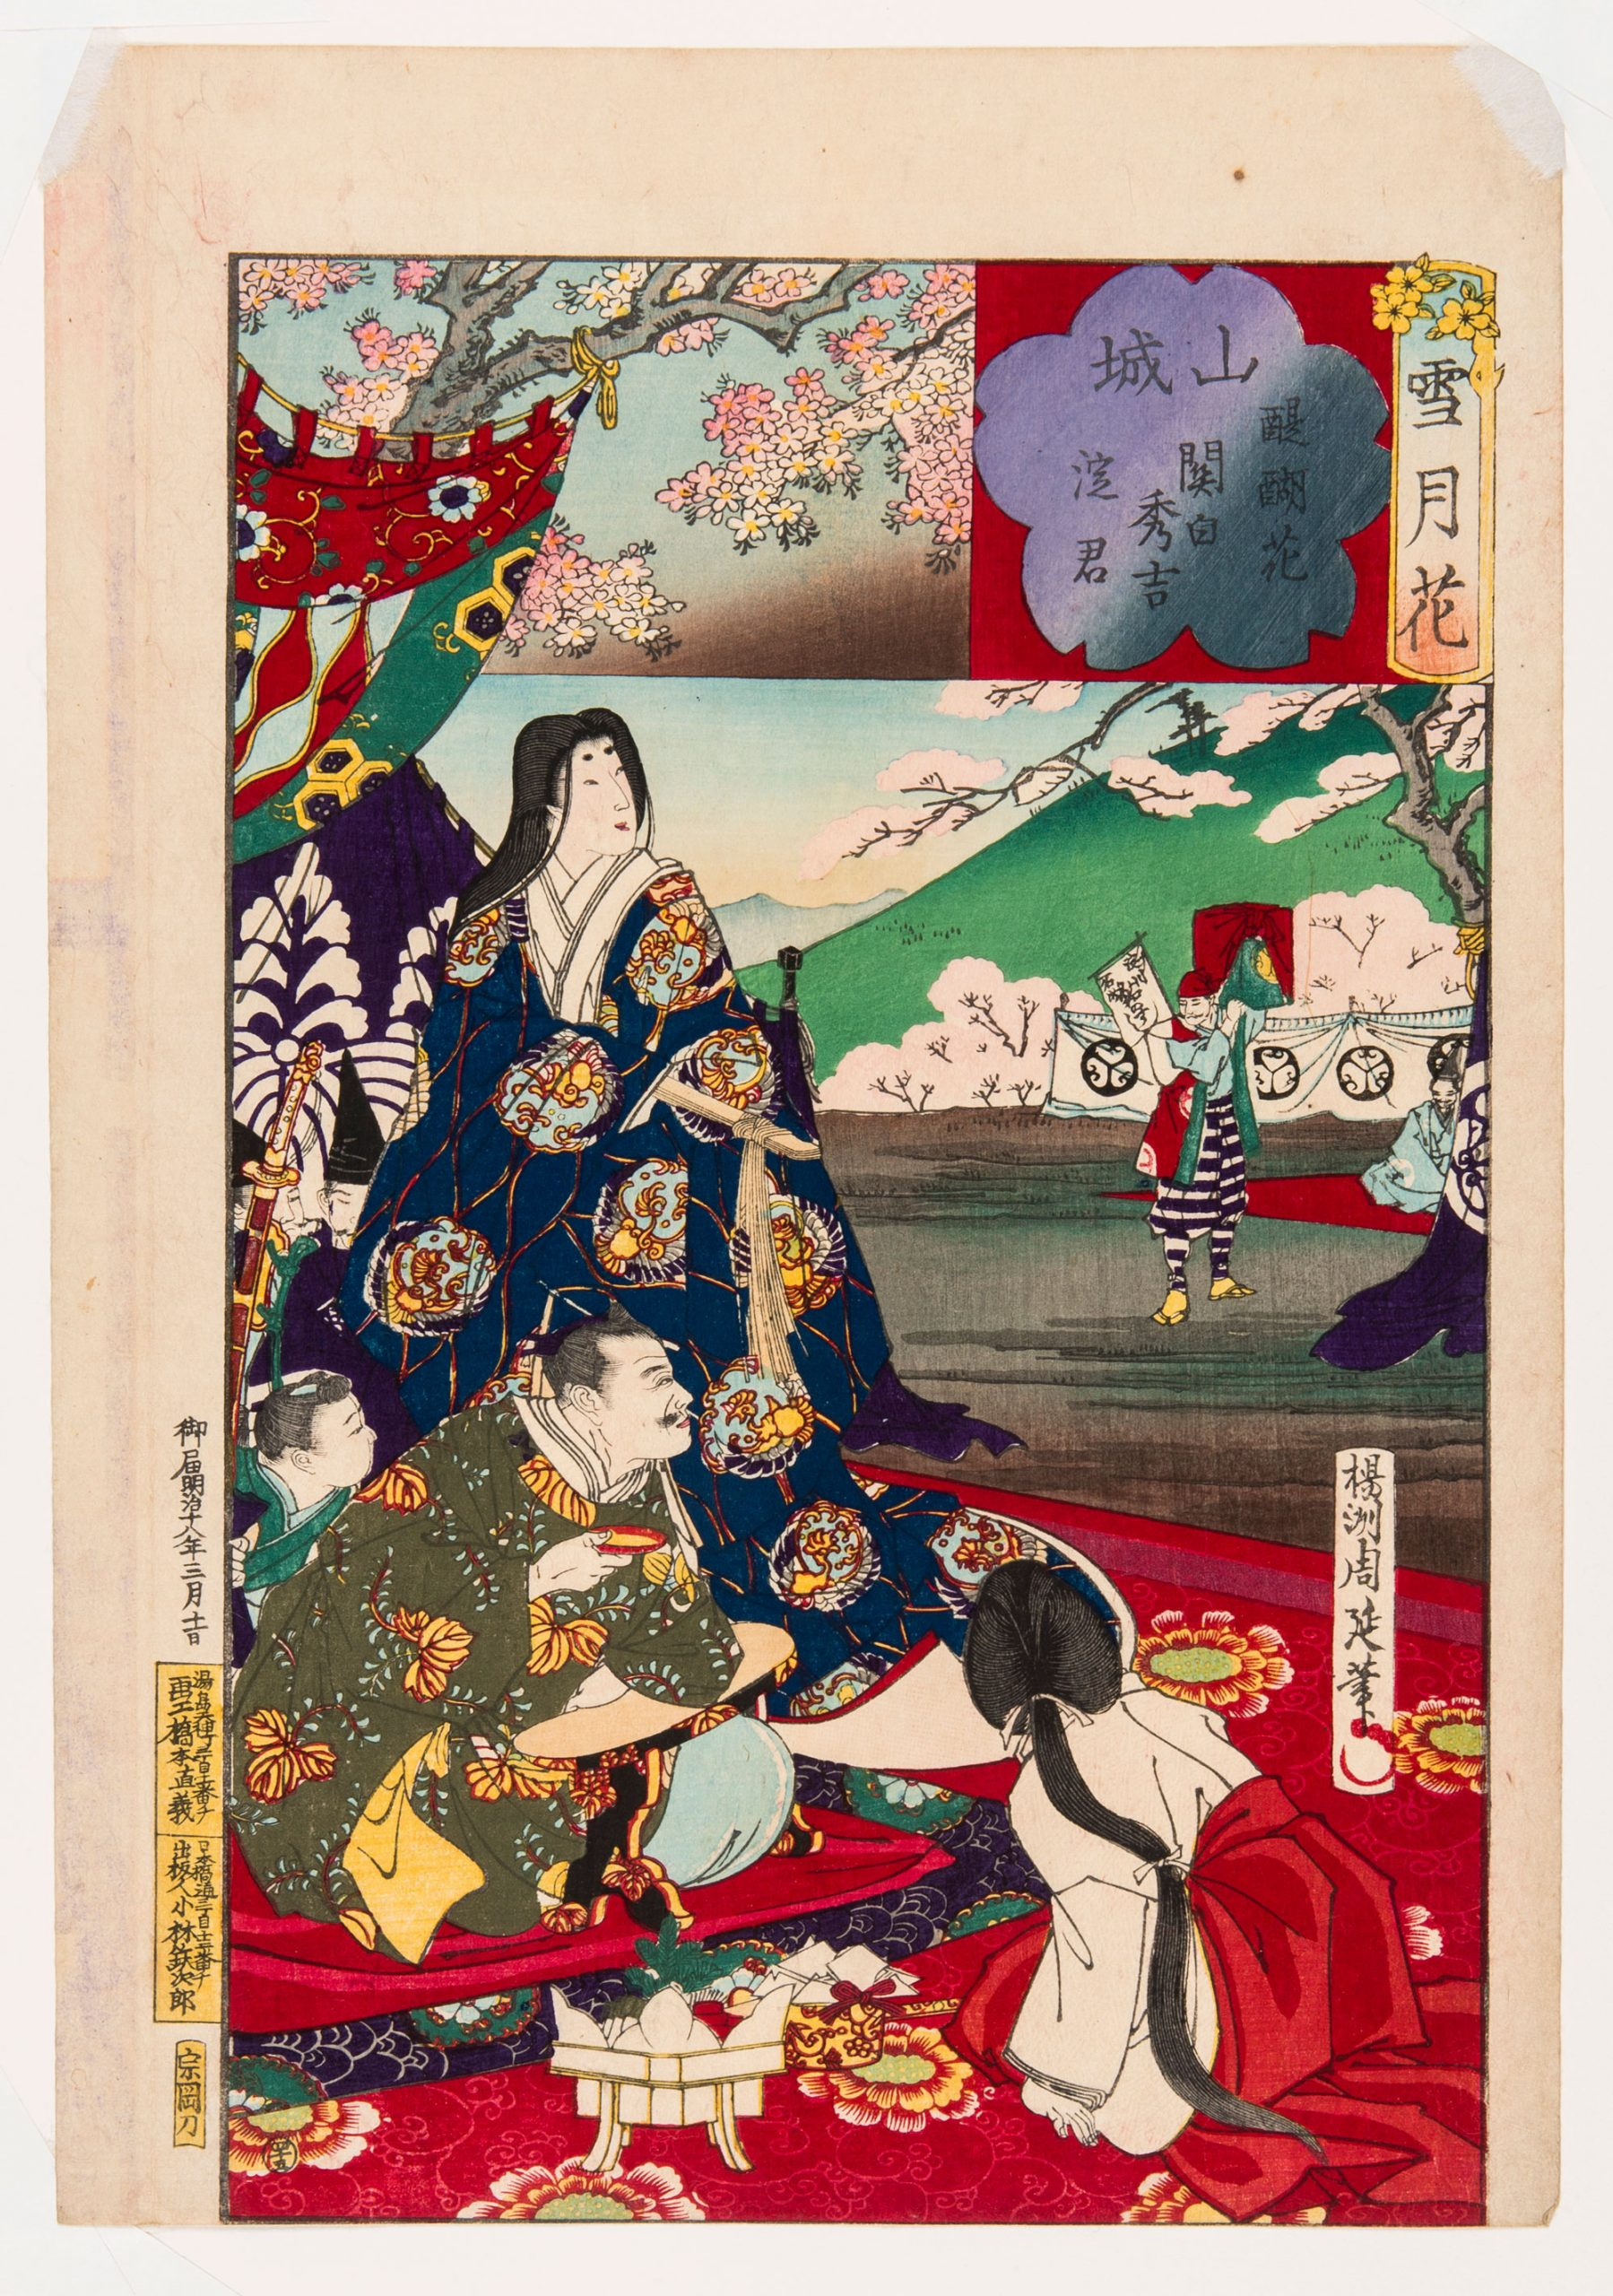 Women sit at the base of a snowy mountain surrounded by cherry blossoms.